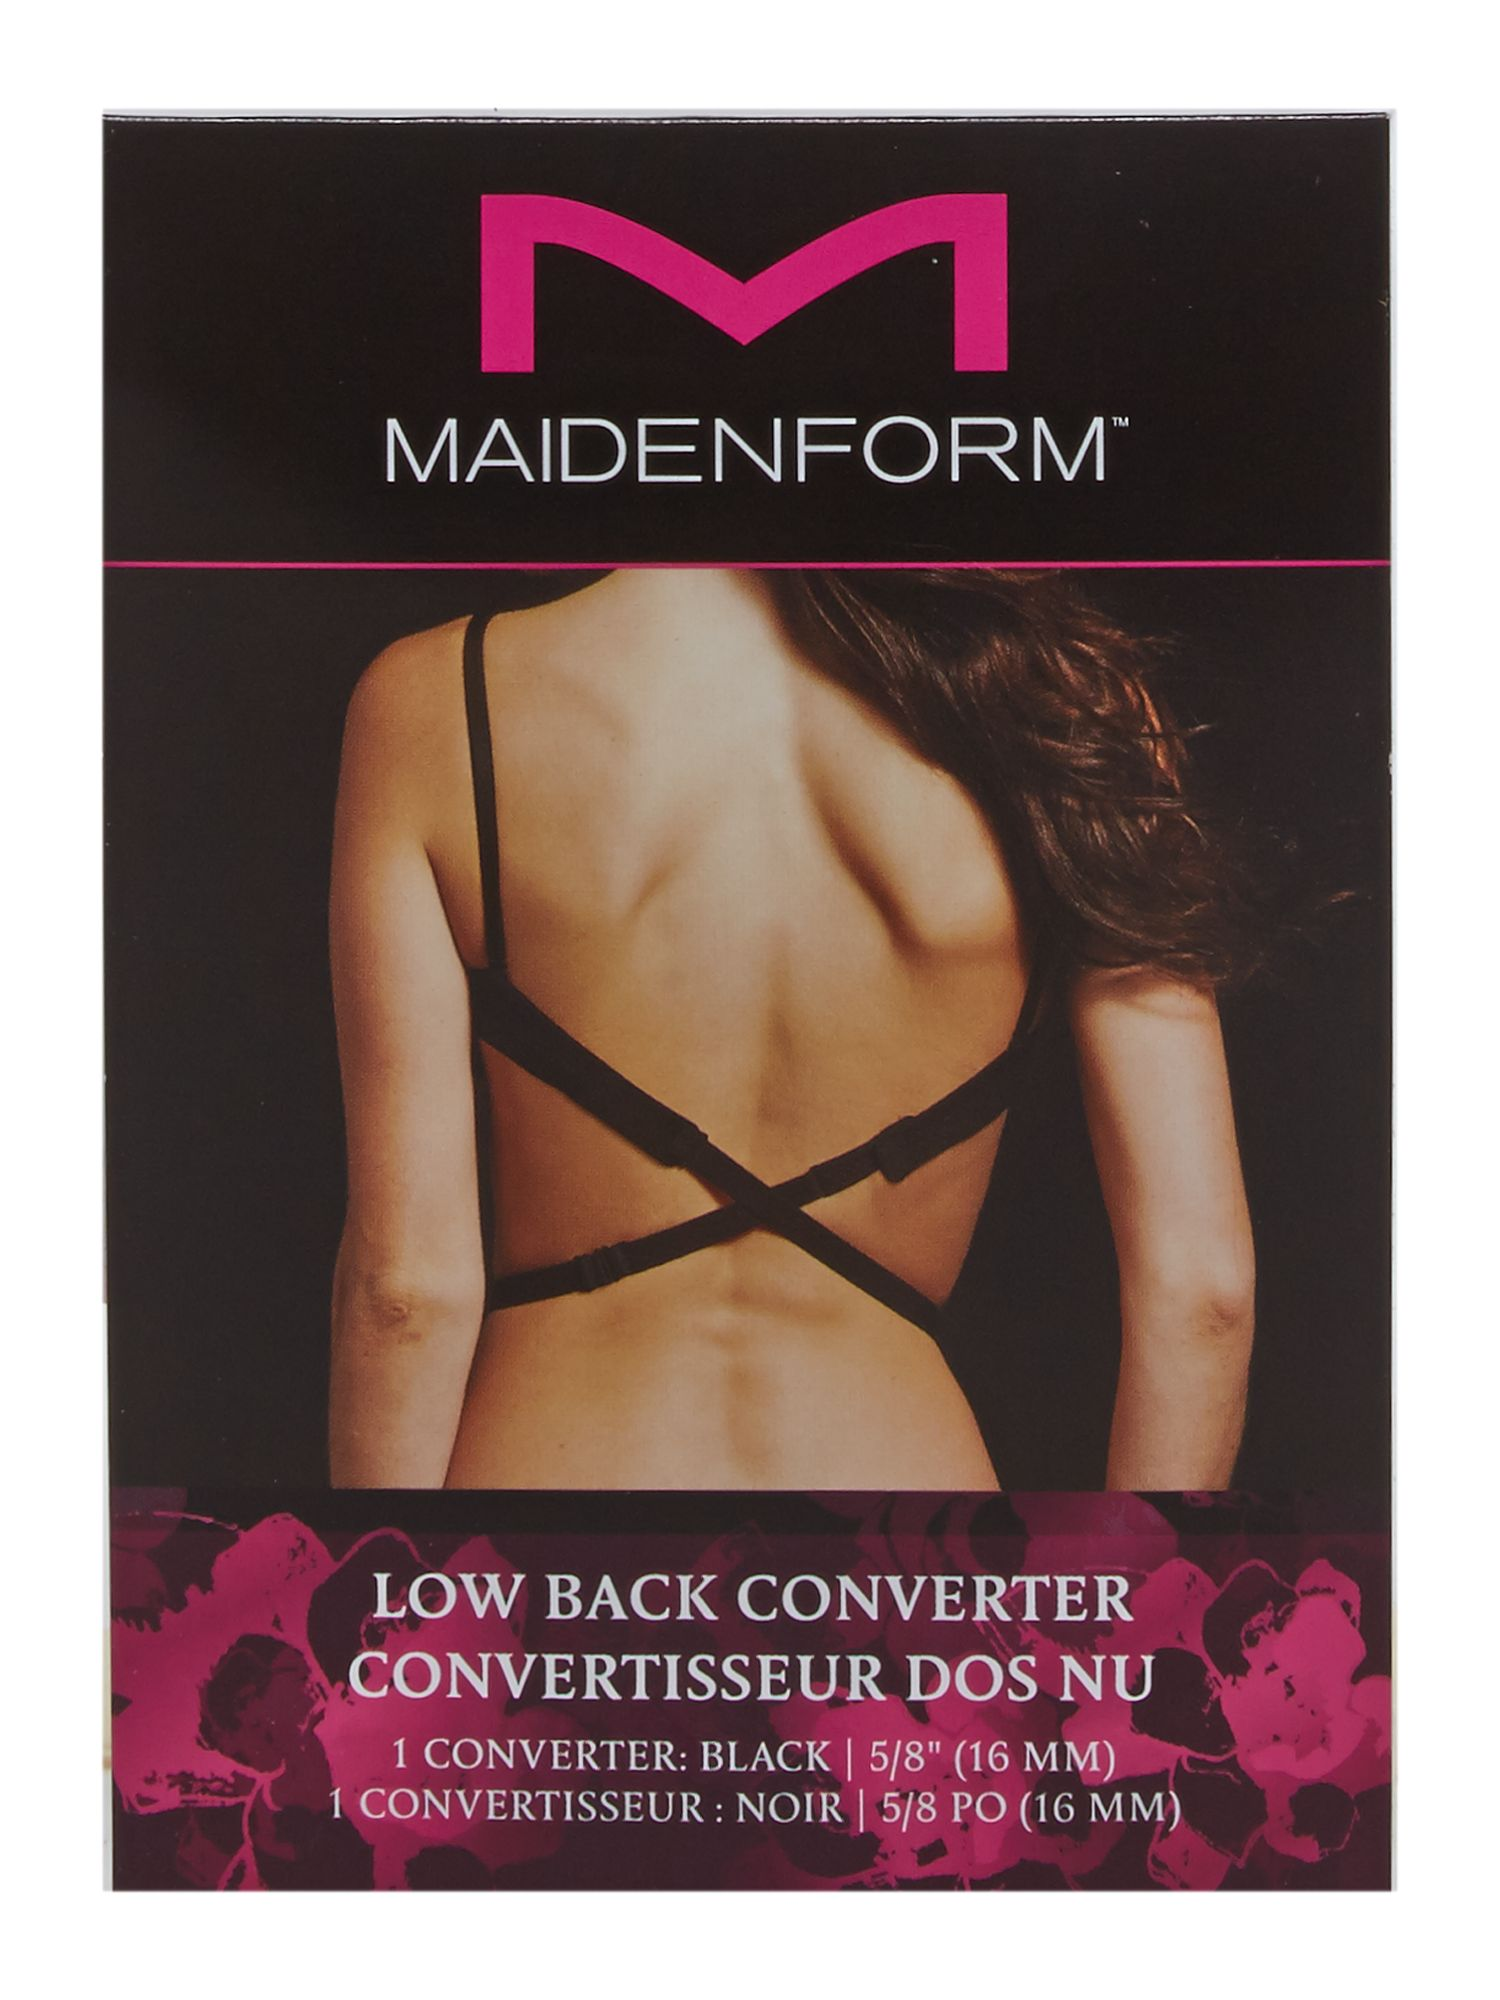 Maidenform Accessories Maidenform Accessories Low back converter, Black